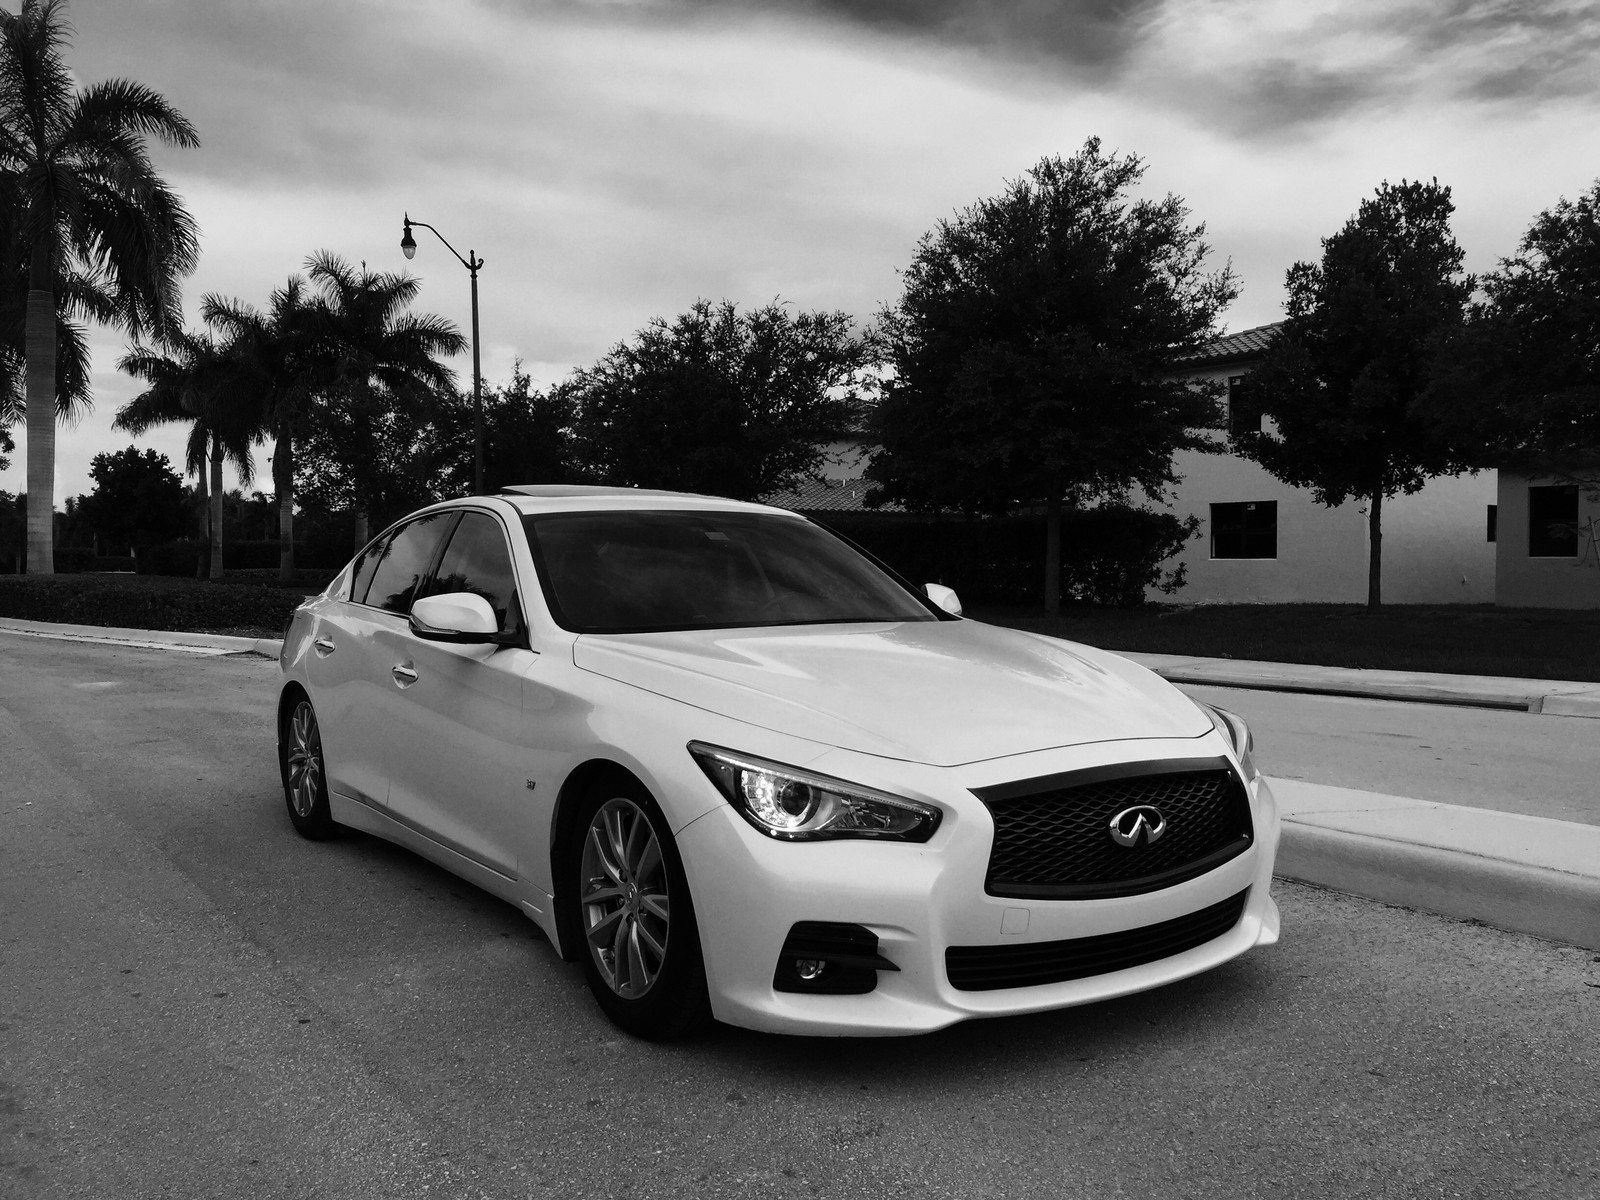 2014 infiniti q50 premium 1 4 mile drag racing timeslip specs 0 60. Black Bedroom Furniture Sets. Home Design Ideas